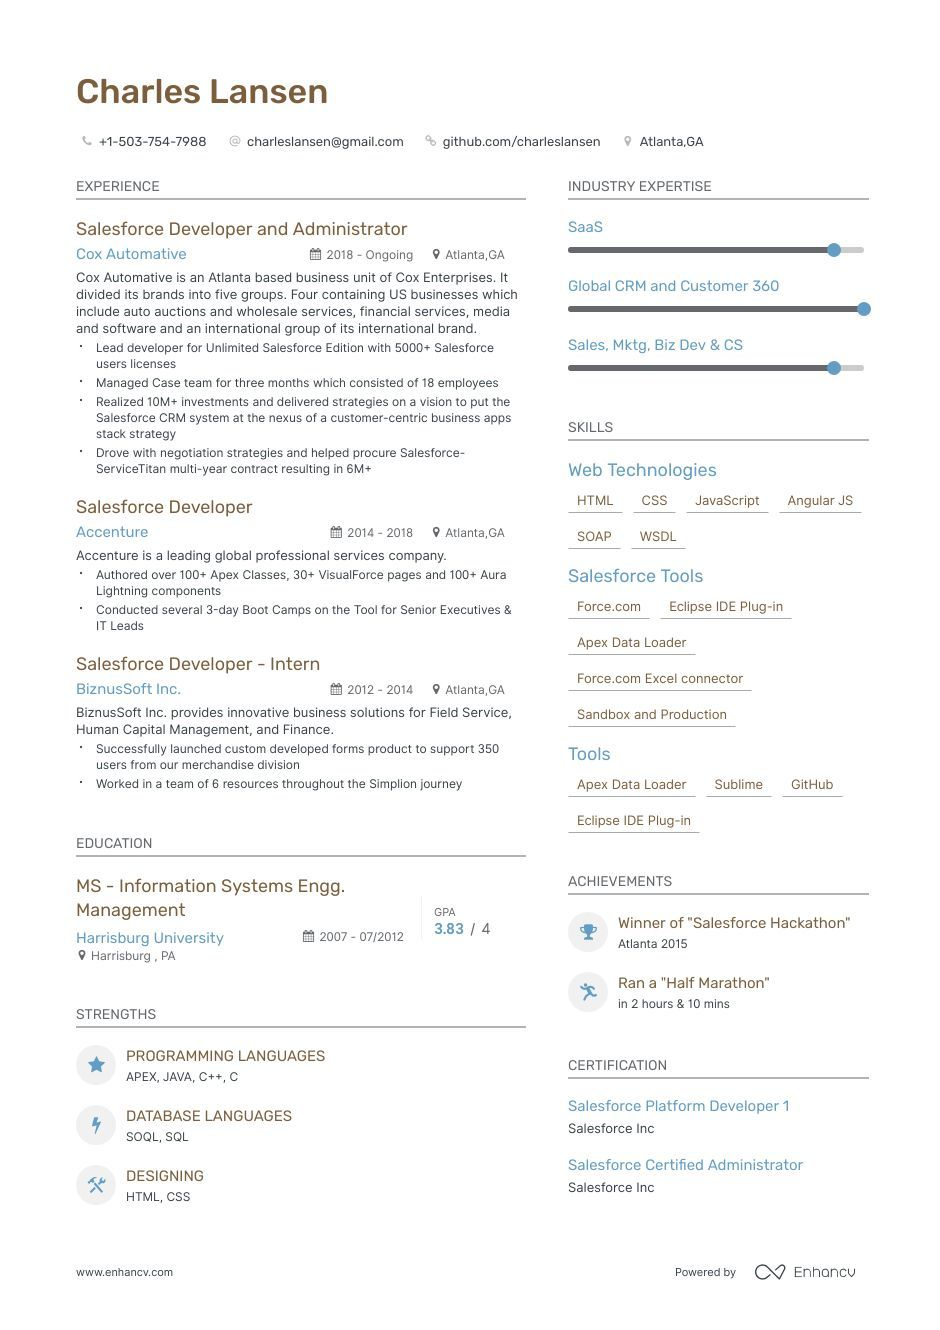 Top Salesforce Developer Resume Examples 9 Samples Tips Bundle Salesforce Developer Resume Examples Good Resume Examples